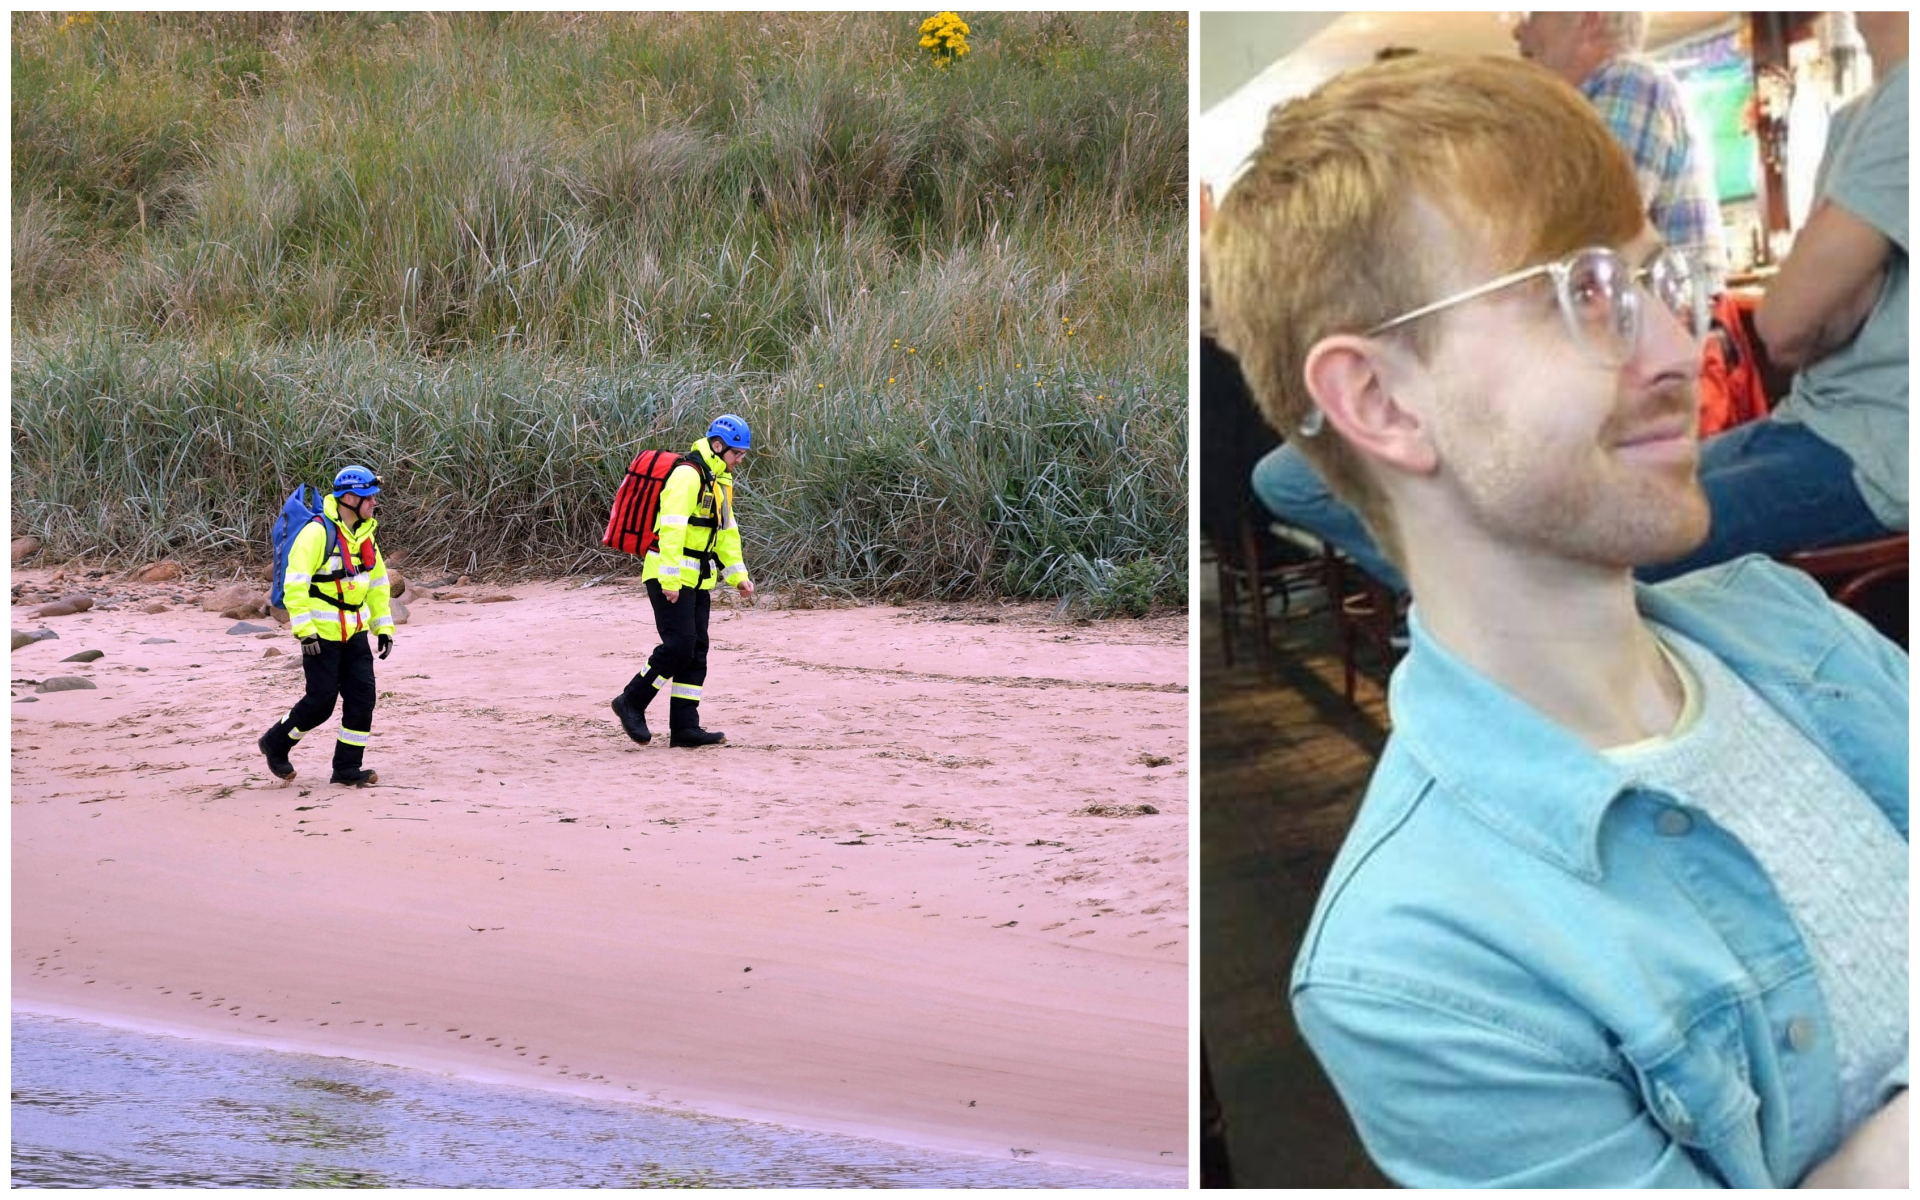 A Coastguard team has been helping in the search for Ruairidh Sandison.